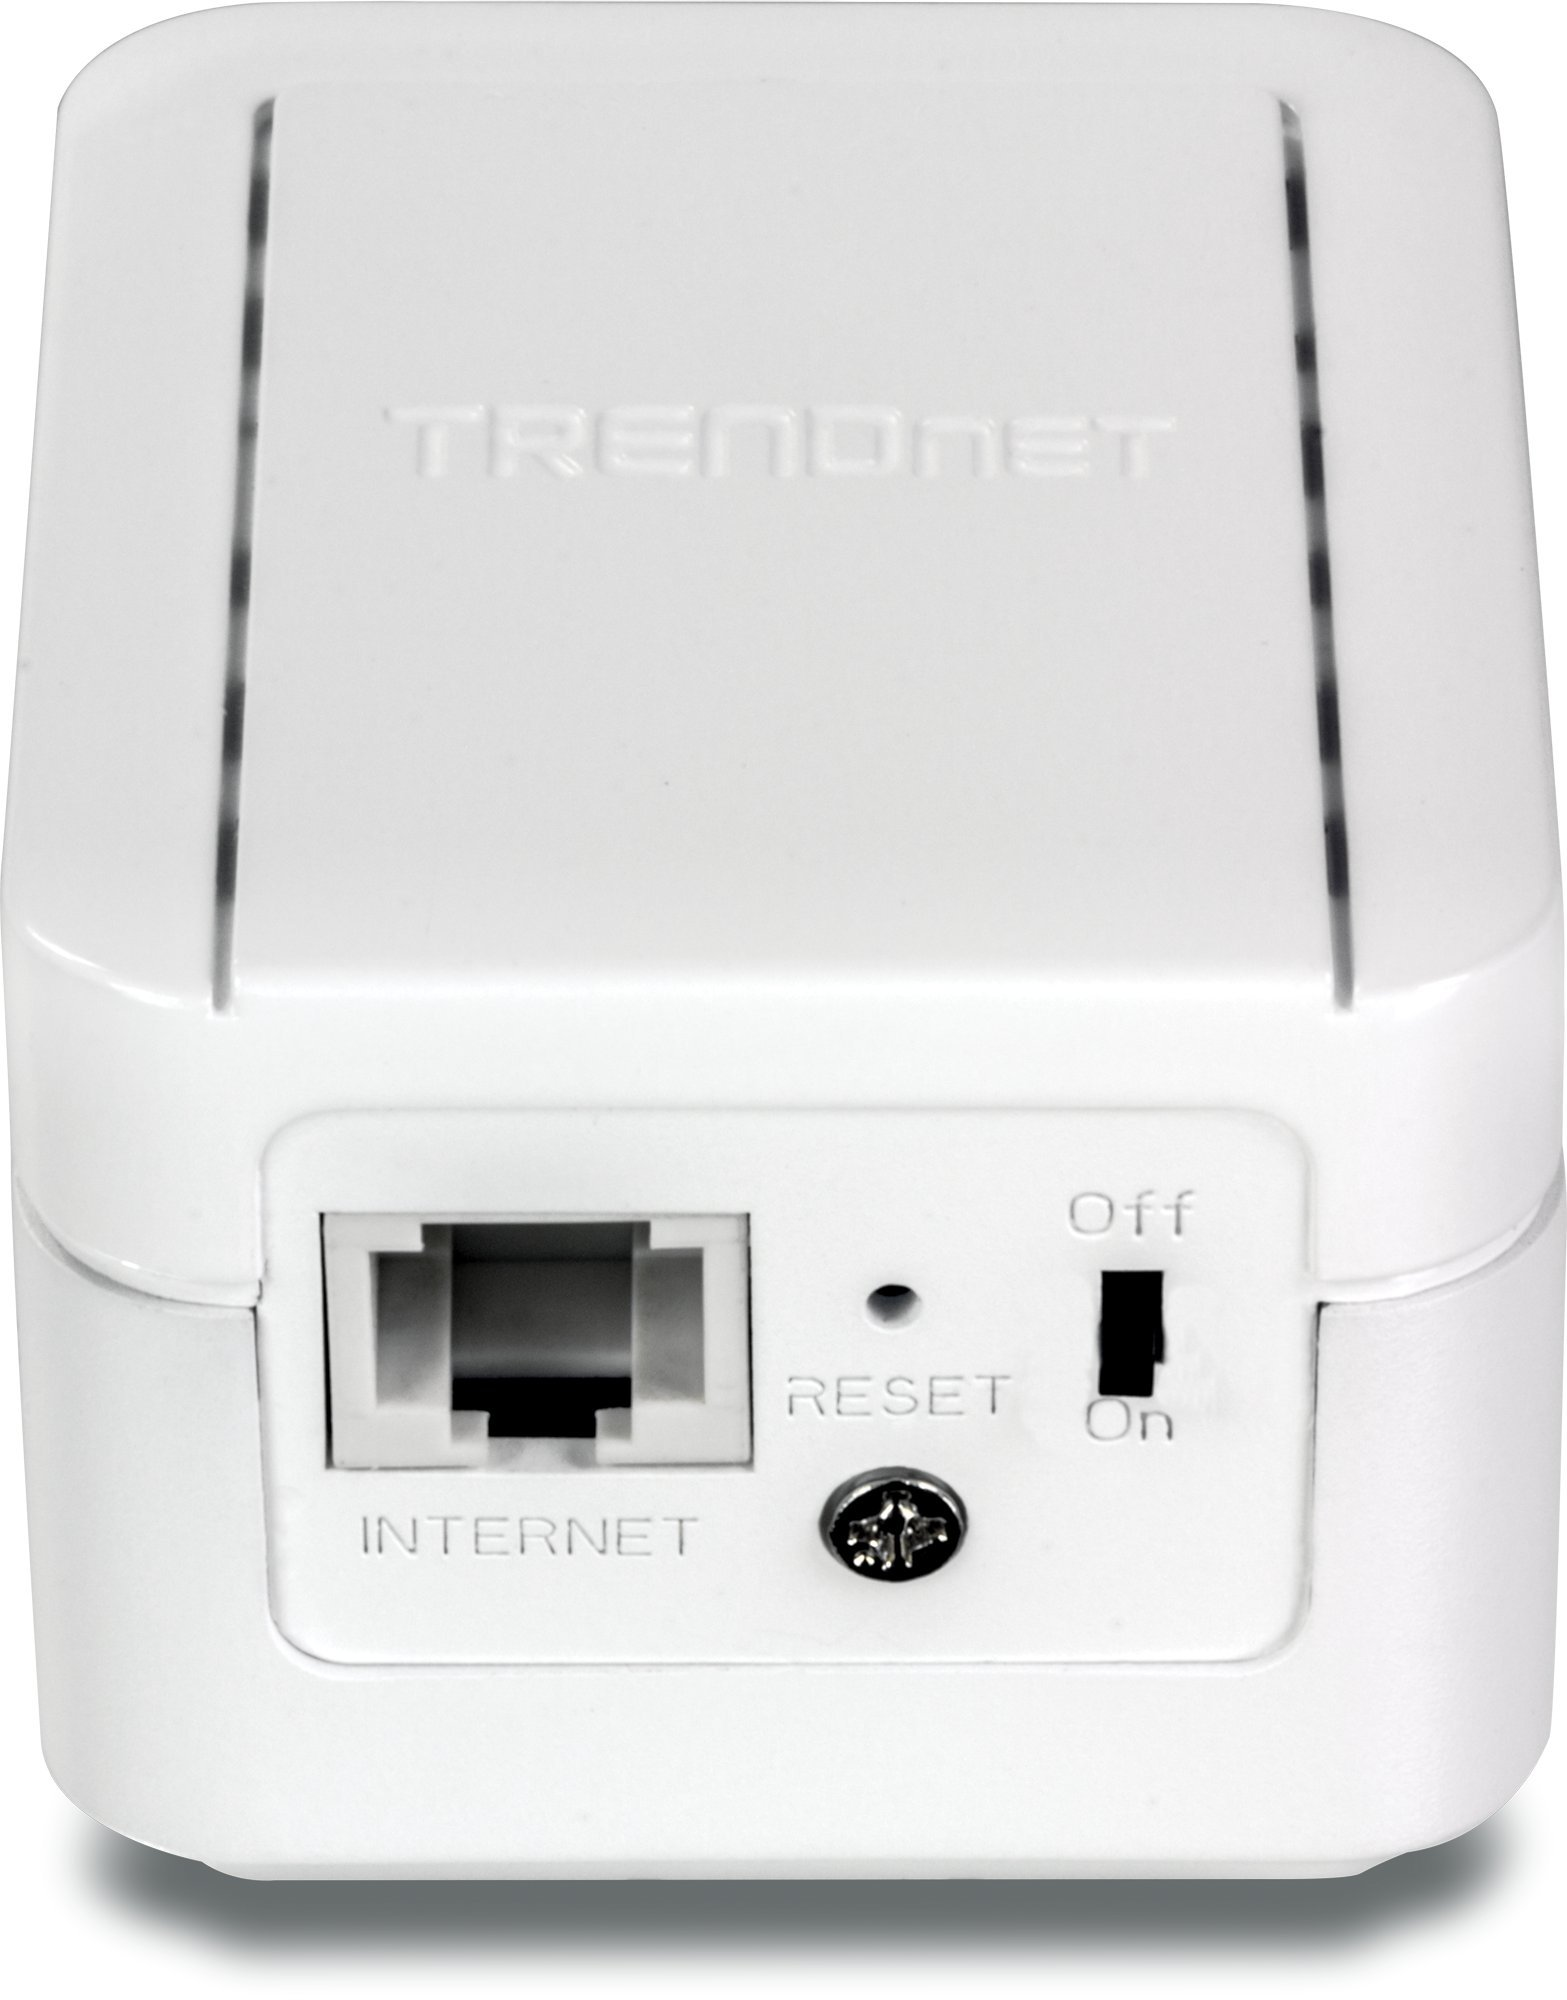 TRENDnet  TEW-737HRE N300 20 DBM, High Powered Universal Wireless Range Extender, Wi-Fi Repeater, Wall Plug, Plug and Play, Ethernet Port, One Touch connection (WPS), Smart Signal Indicator LED,IP V6, On/Off Power switch, TEW-737HRE by TRENDnet (Image #2)